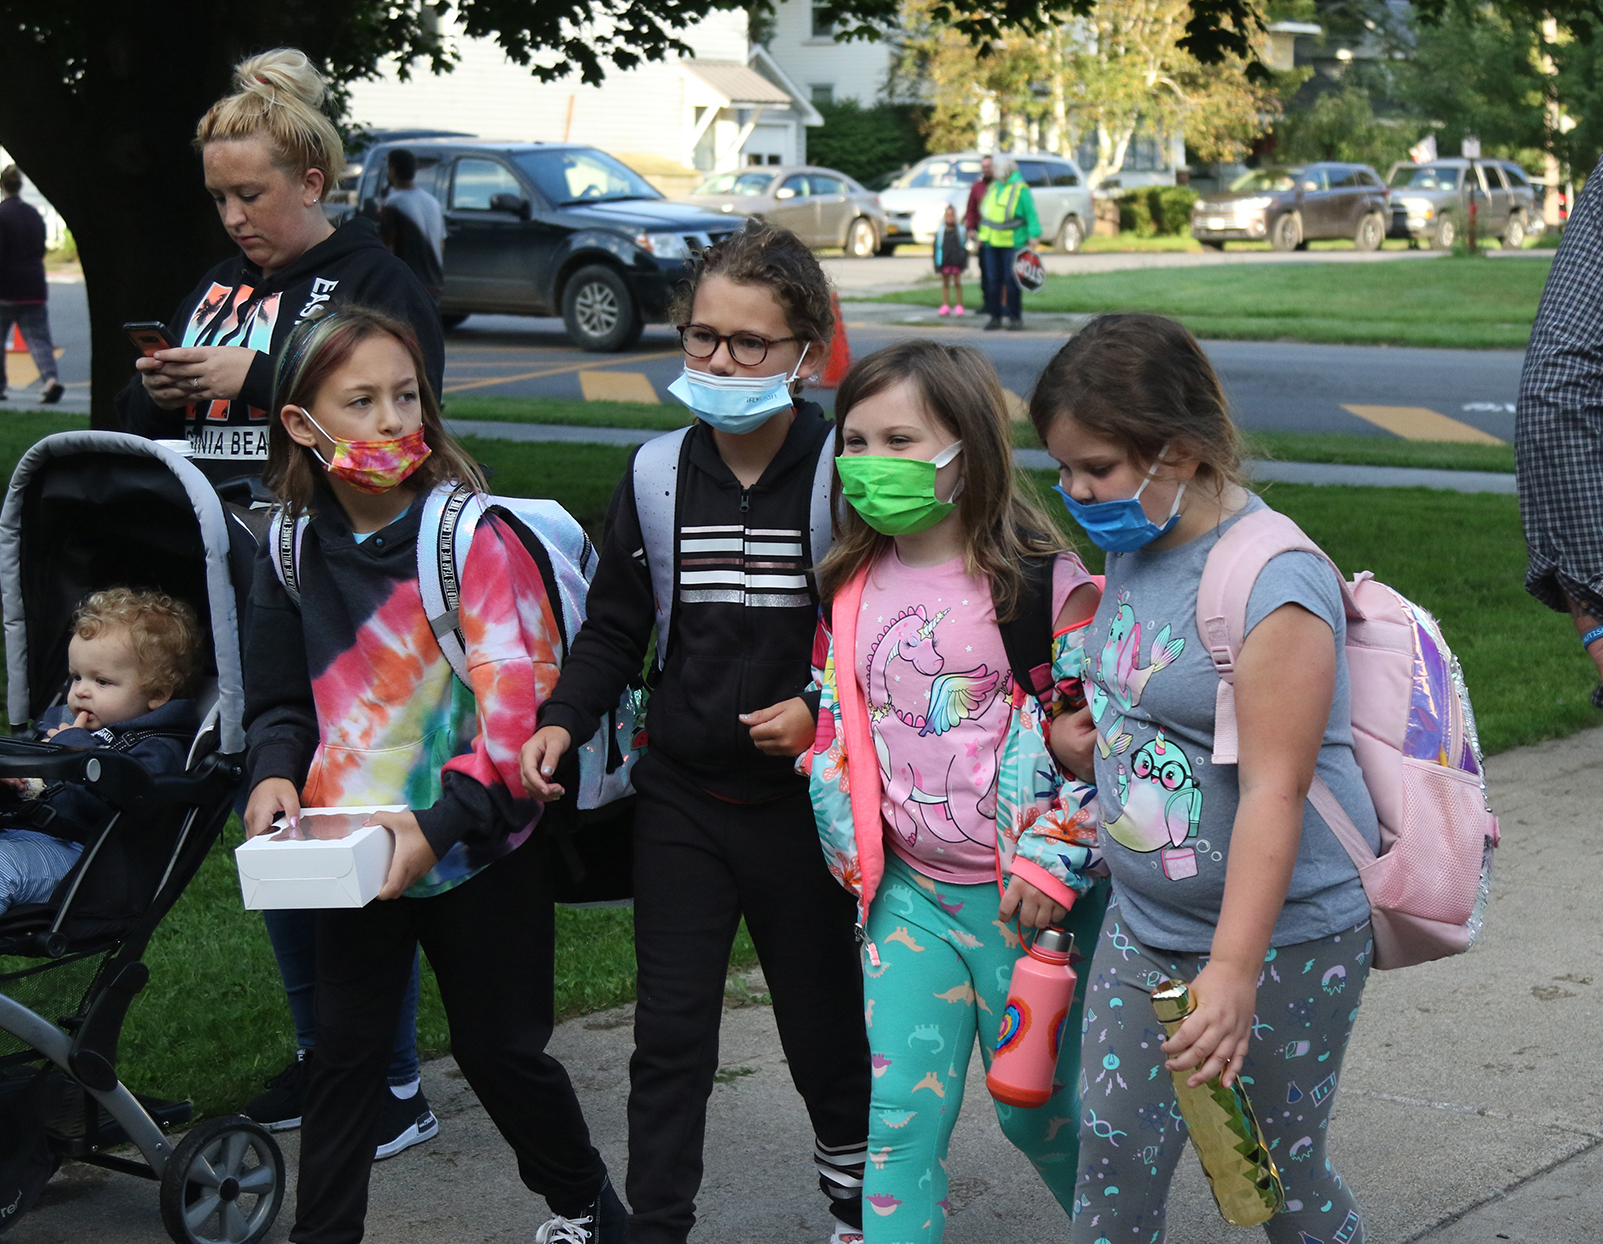 Students on first day of school 2021